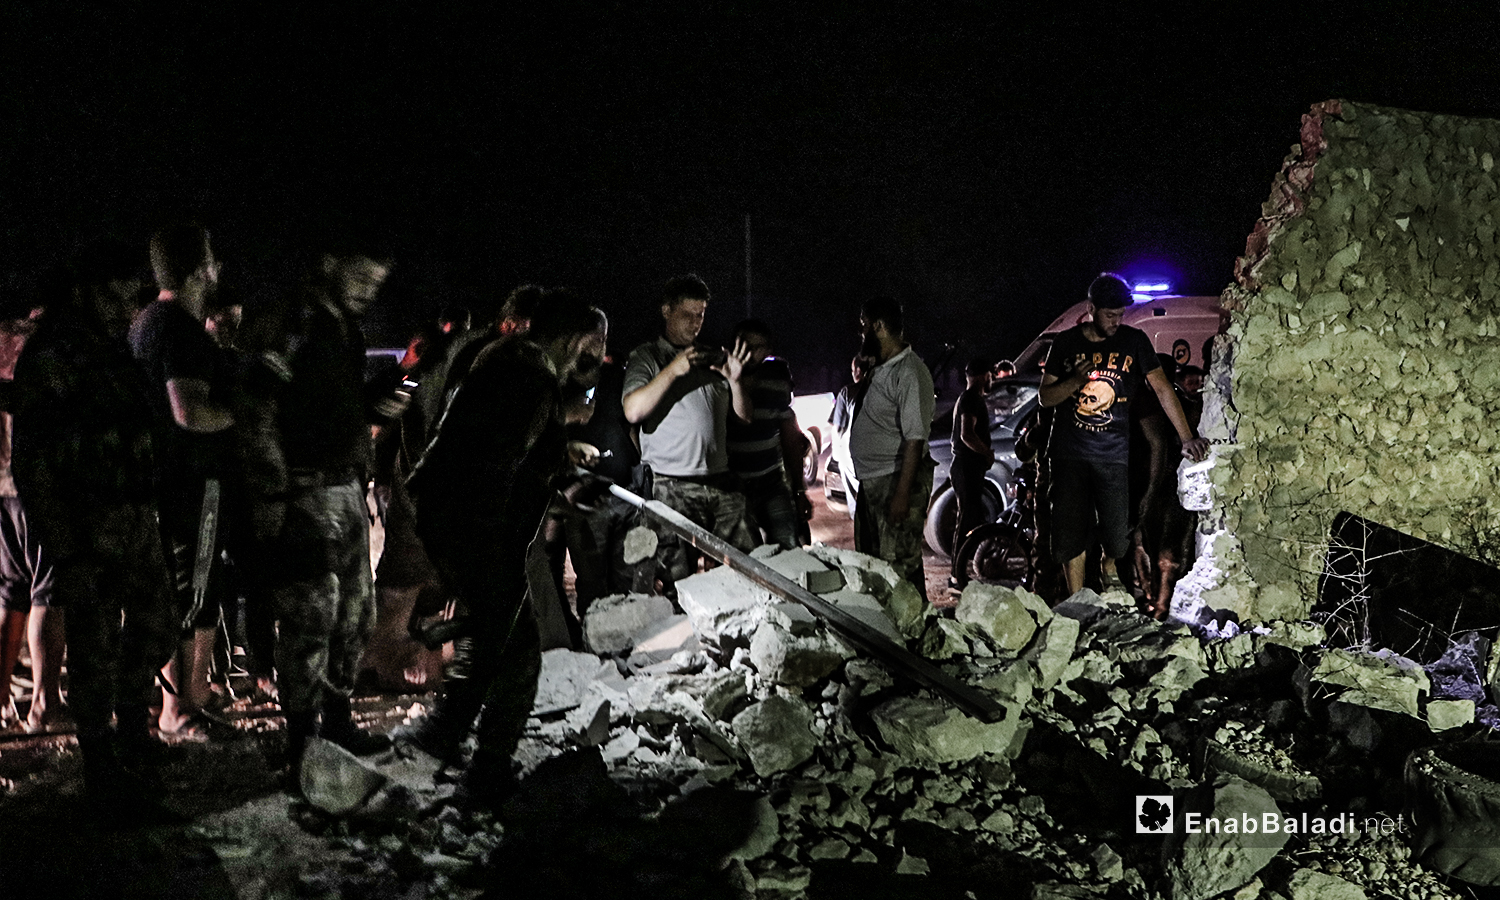 The explosion of an improvised explosive device (IED) in one of the agricultural lands on the outskirts of al-Bab city in the northeastern Aleppo countryside – 27 July 2020 (Enab Baladi / Asim Melhem)